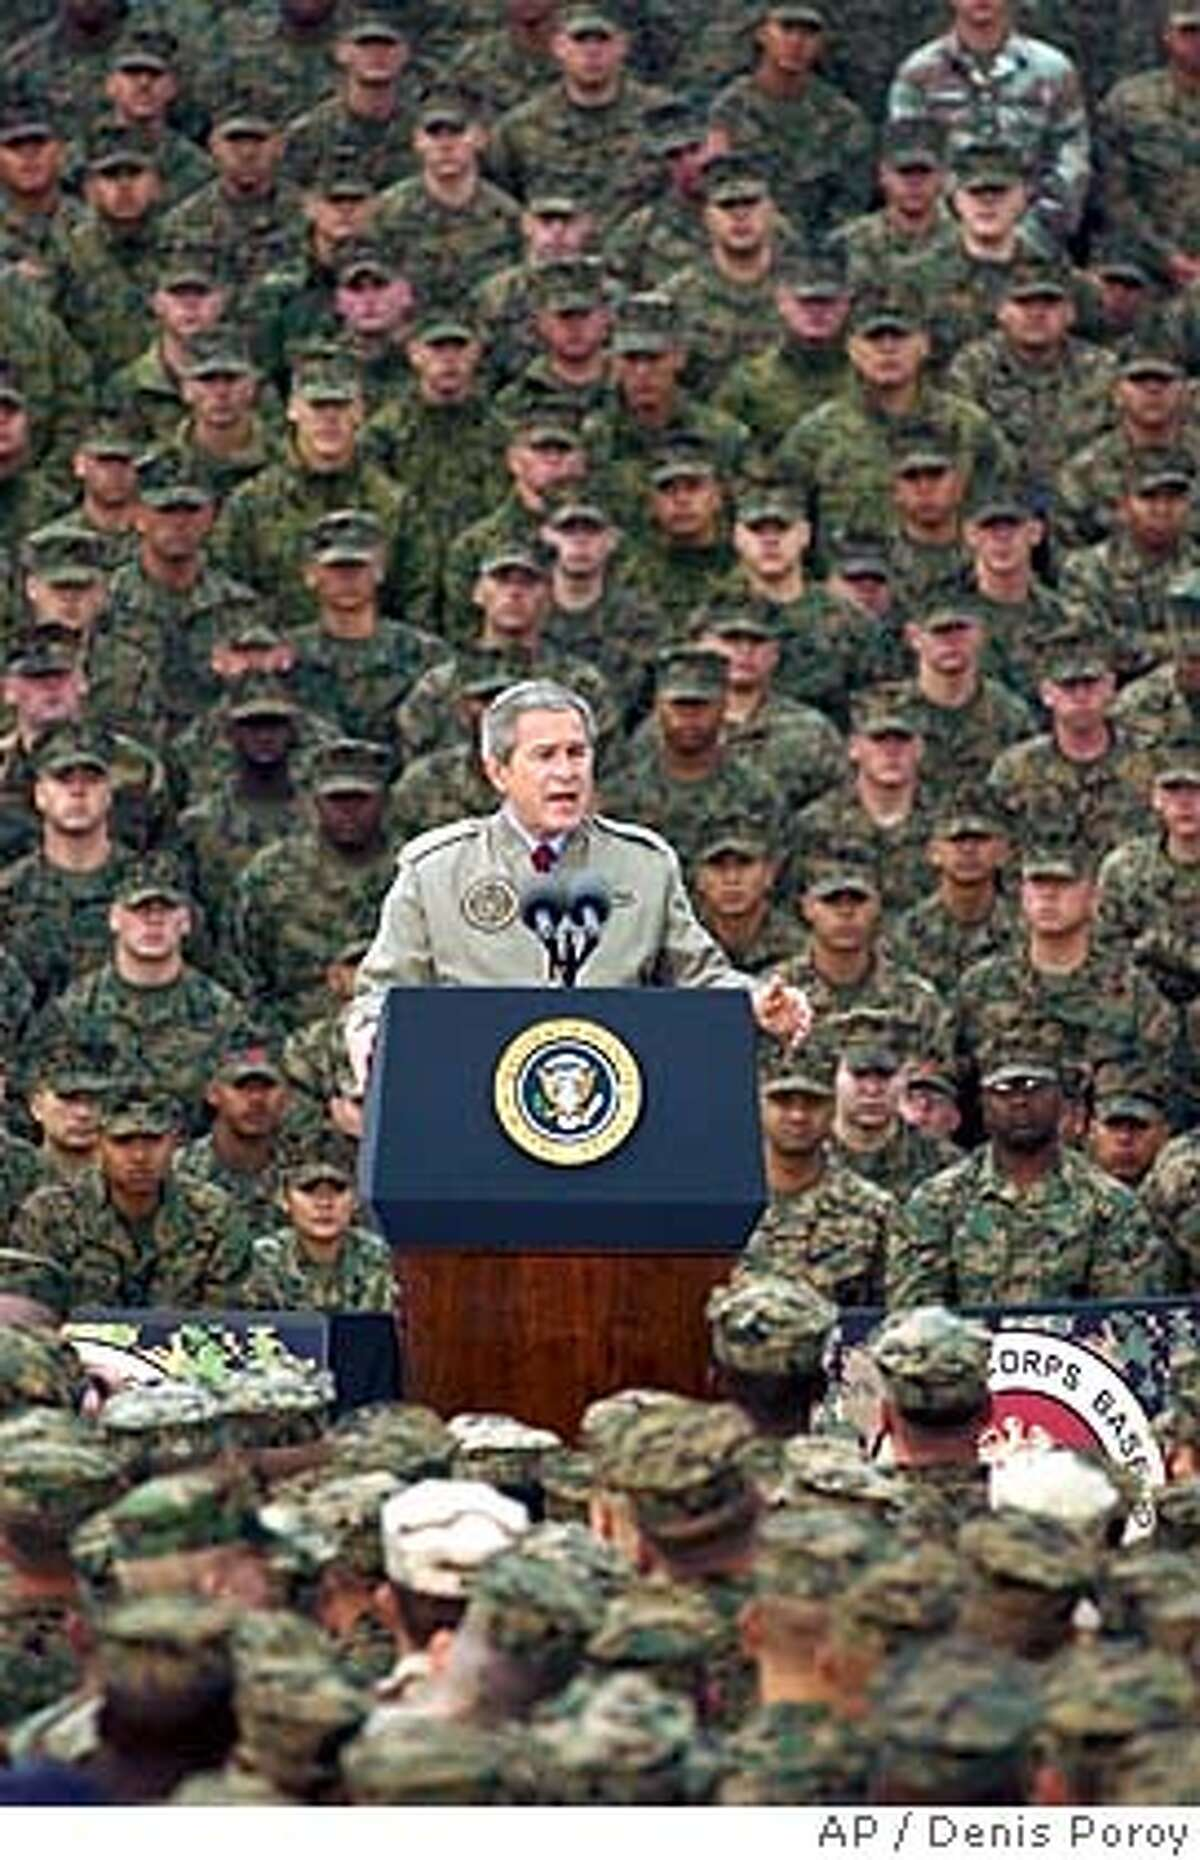 President Bush speaks to Marines during a visit to Camp Pendleton Marine Corps Base in San Diego Tuesday, Dec. 7, 2004. (AP Photo/Denis Poroy) RETRANSMISSION FOR IMPROVED QUALITY